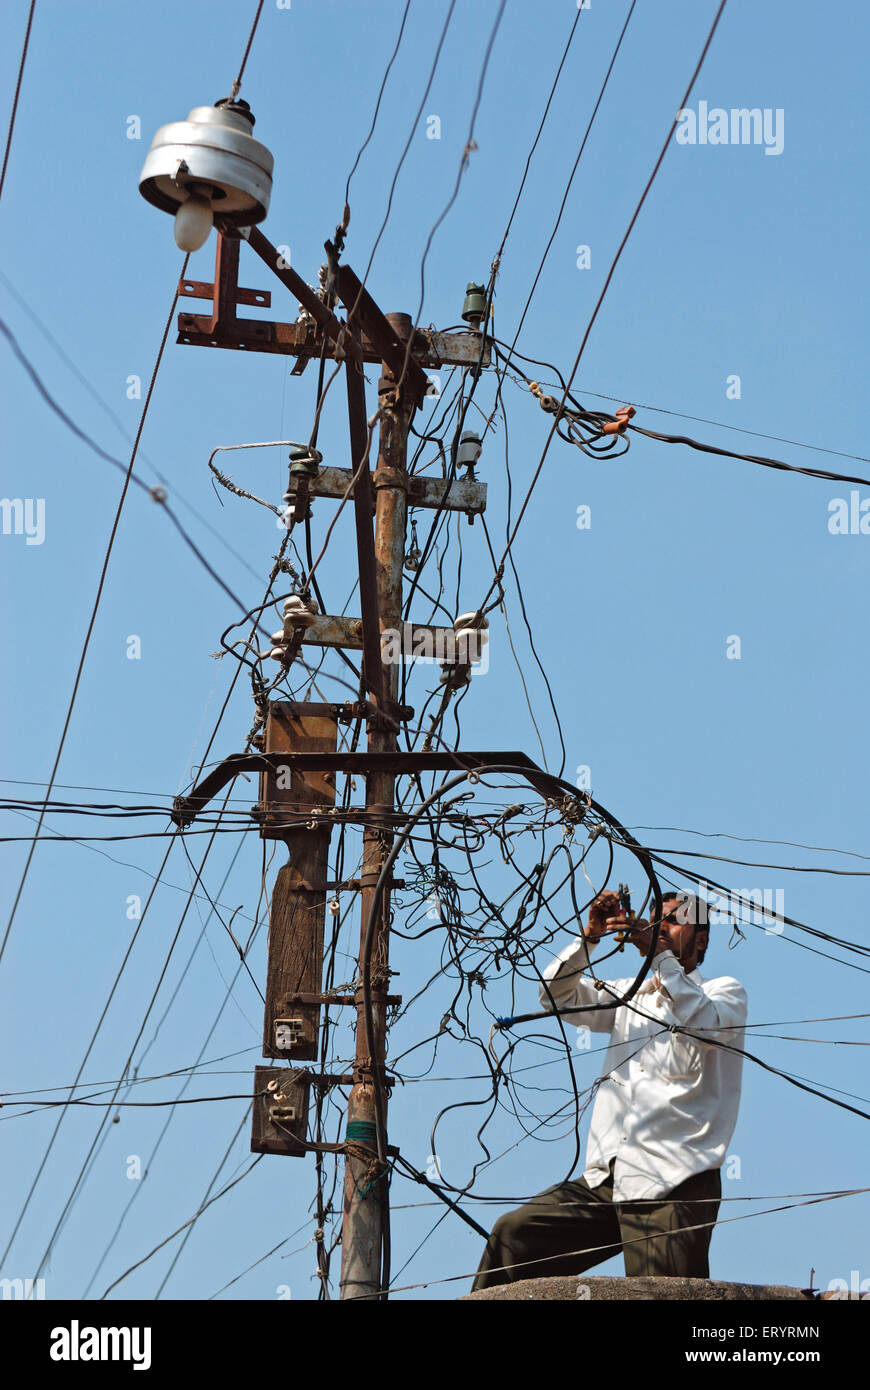 High Tension Cable : Electrician working on high tension electric wire